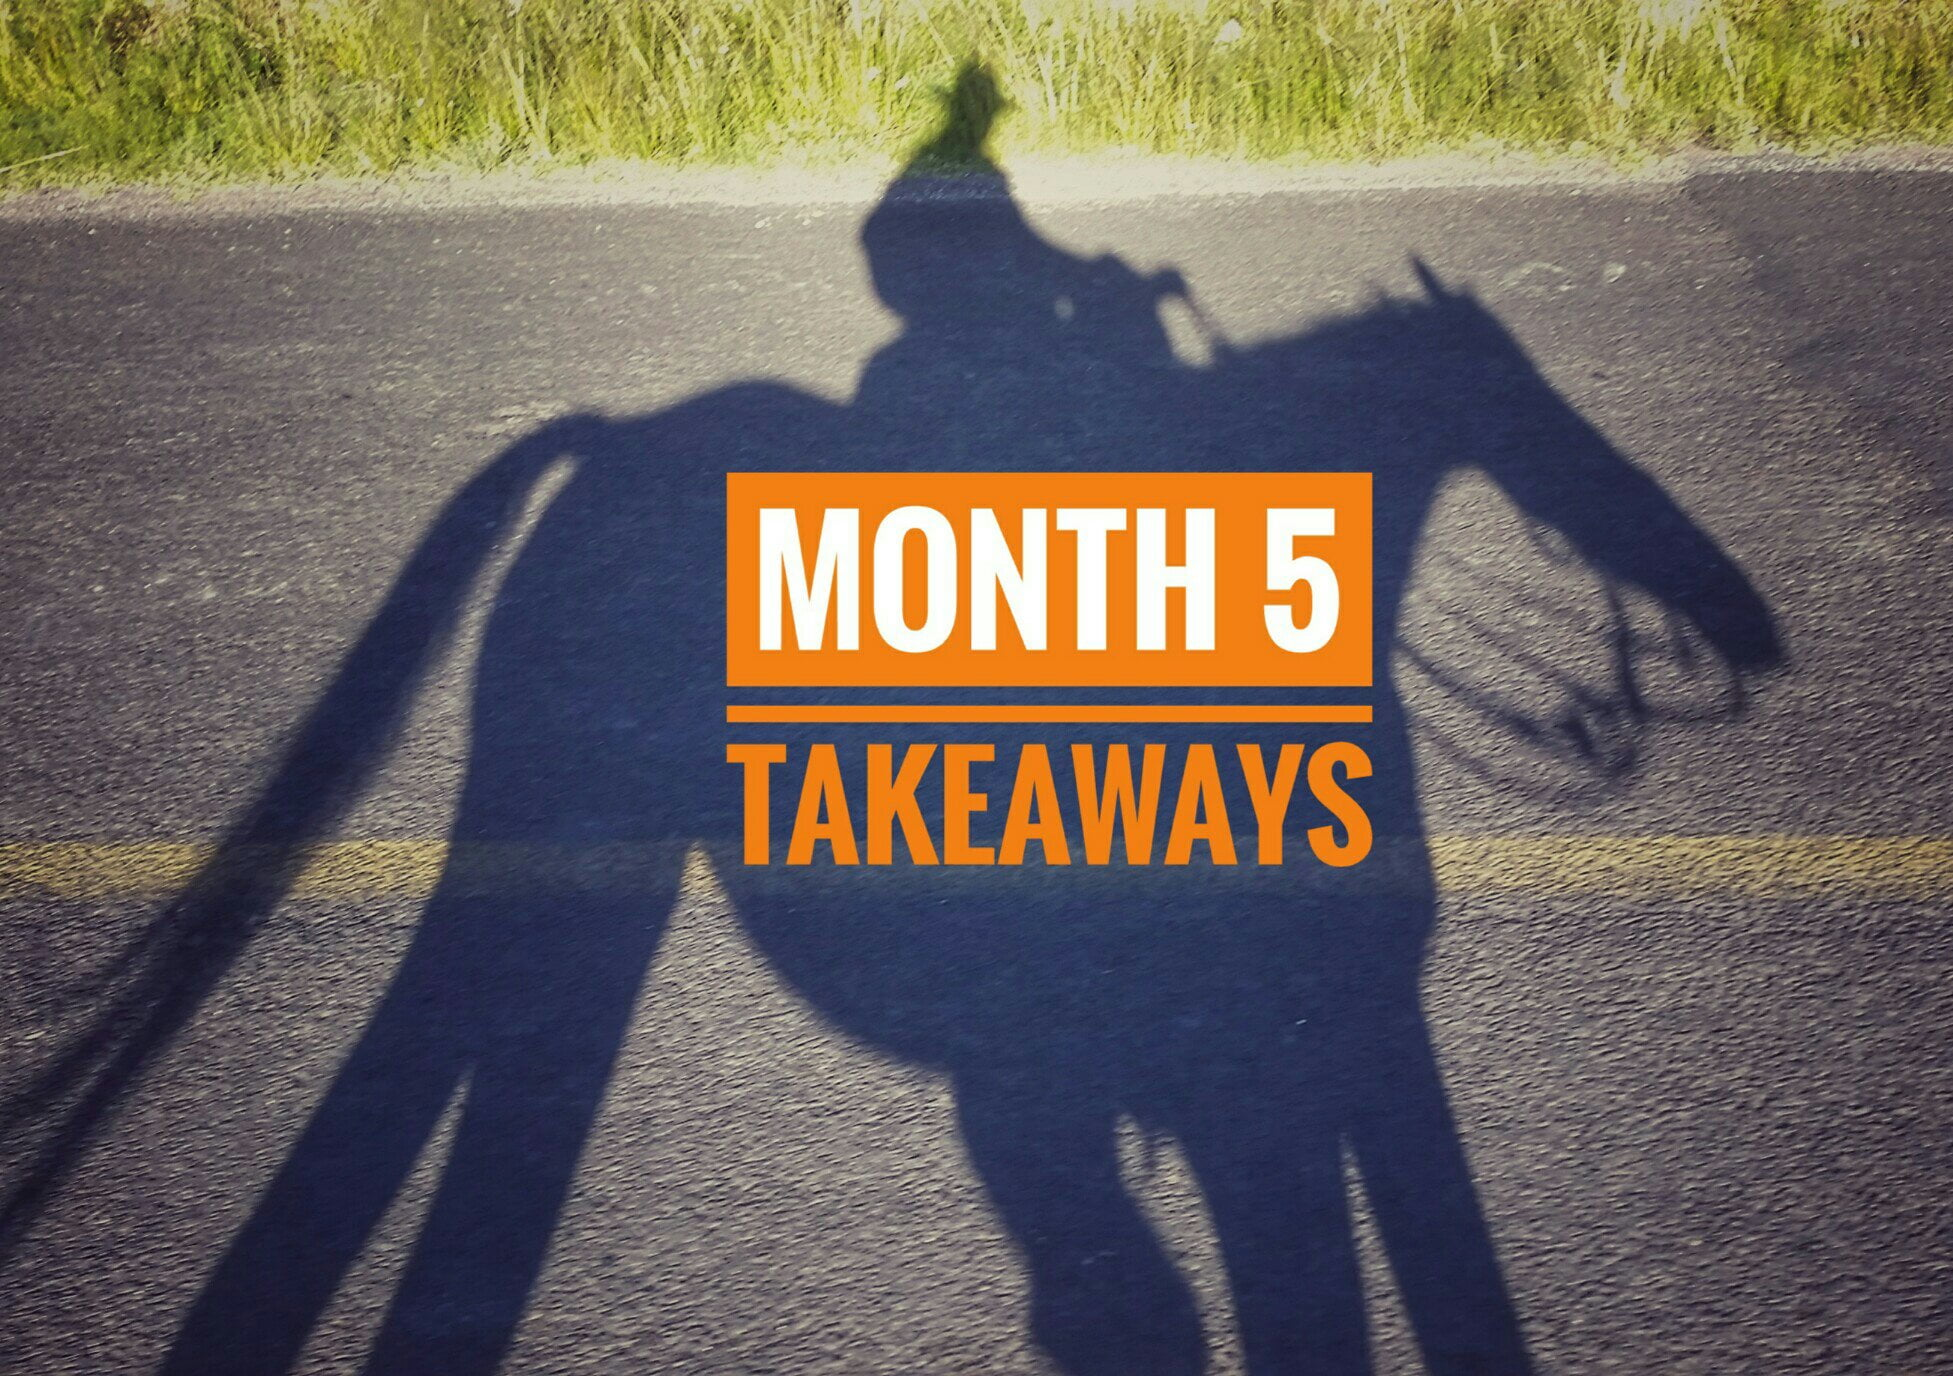 Month 5 | Takeaways